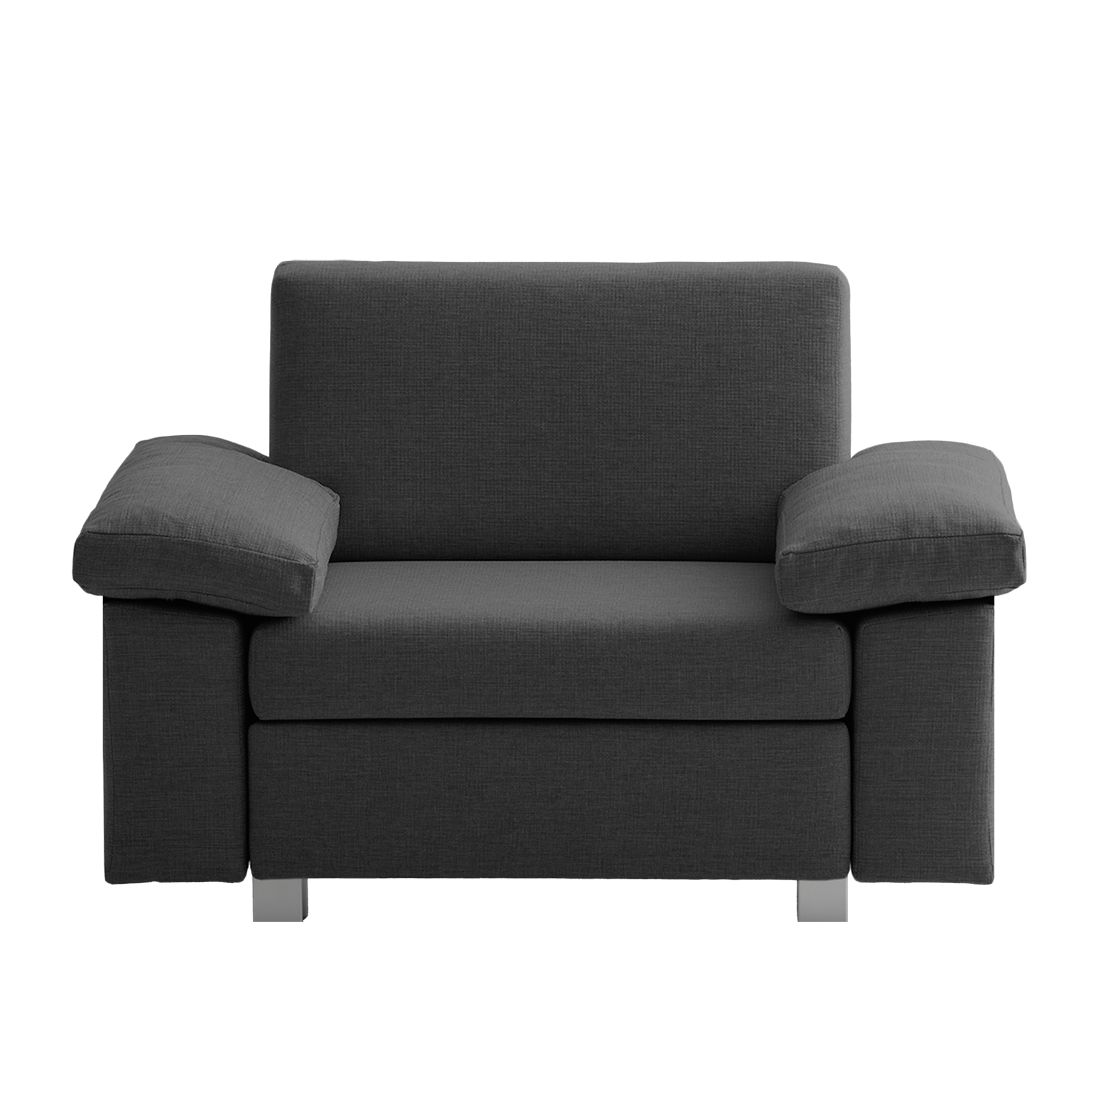 Fauteuil convertible Plaza - Tissu - Anthracite - Types d'accoudoir rabattable, chillout by Franz Fe